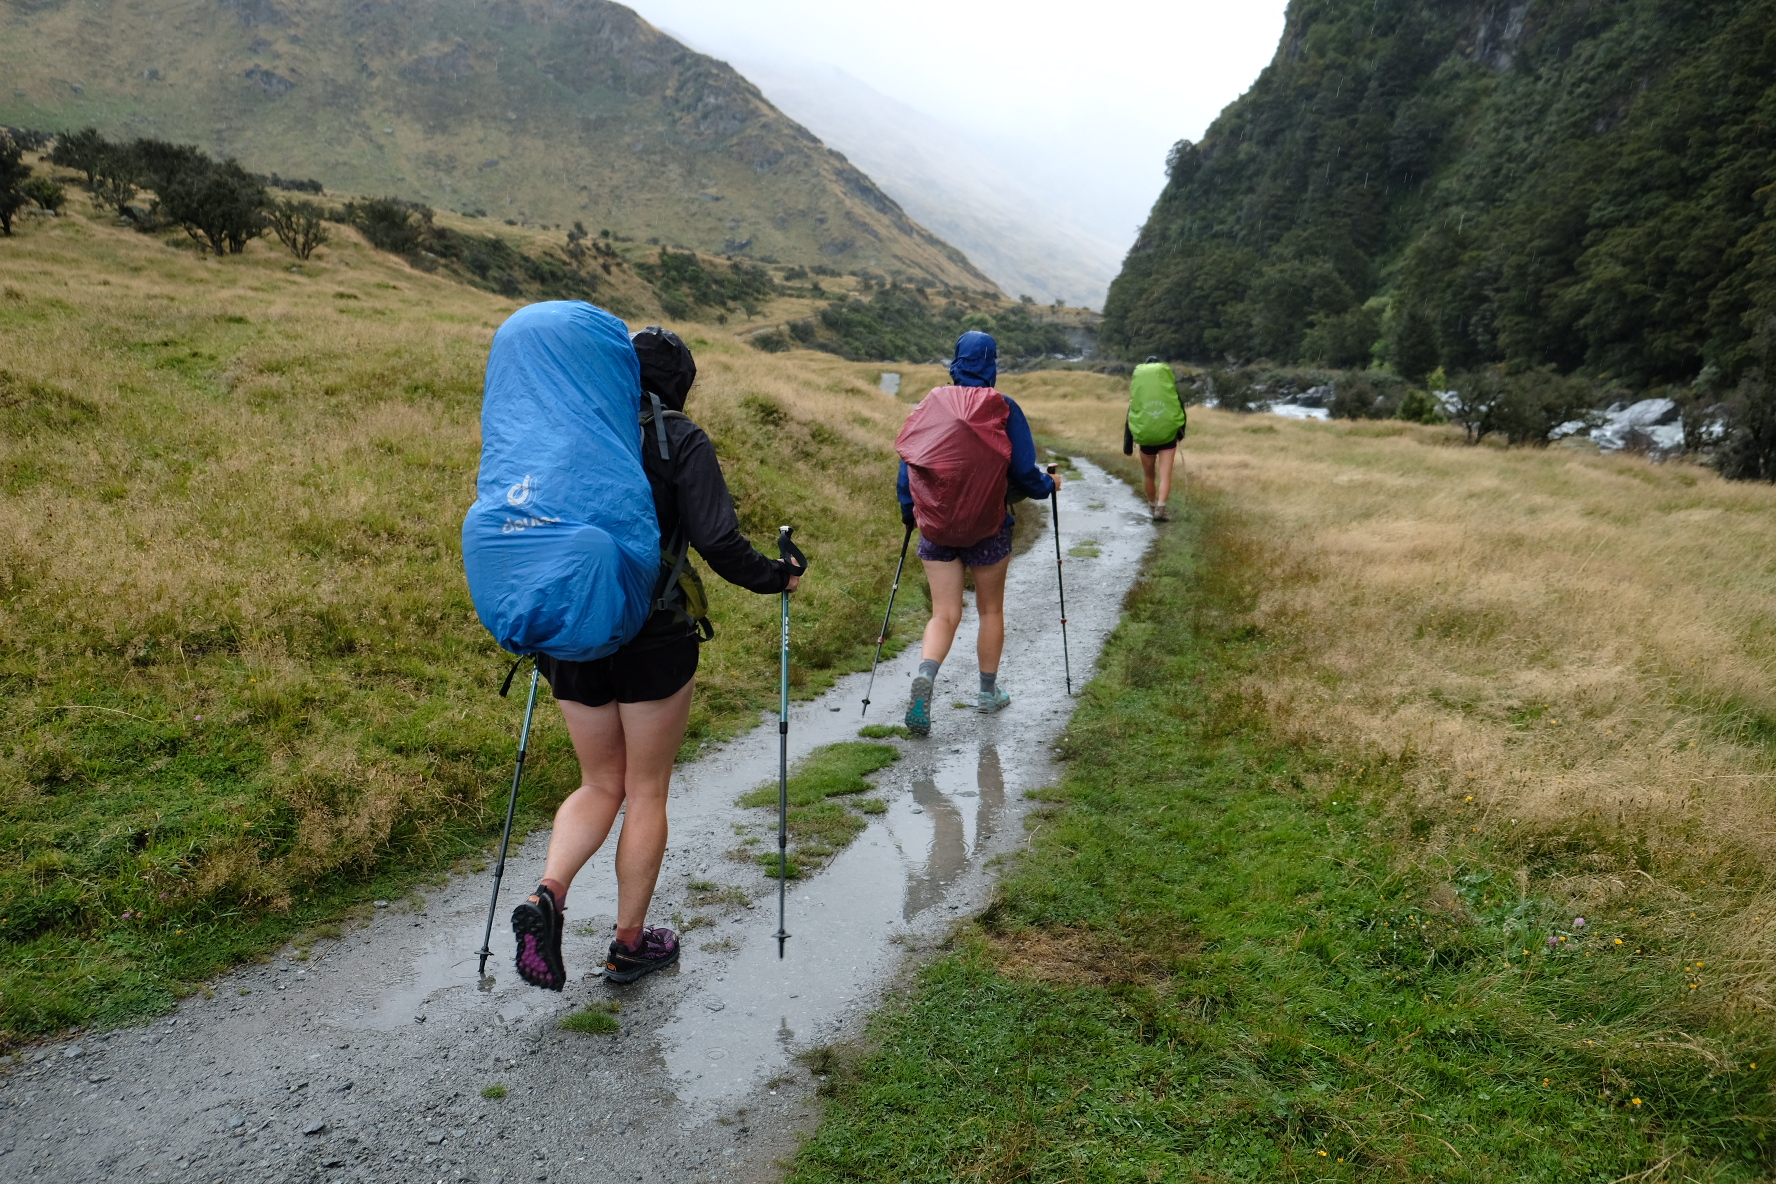 Tramping in the pouring rain